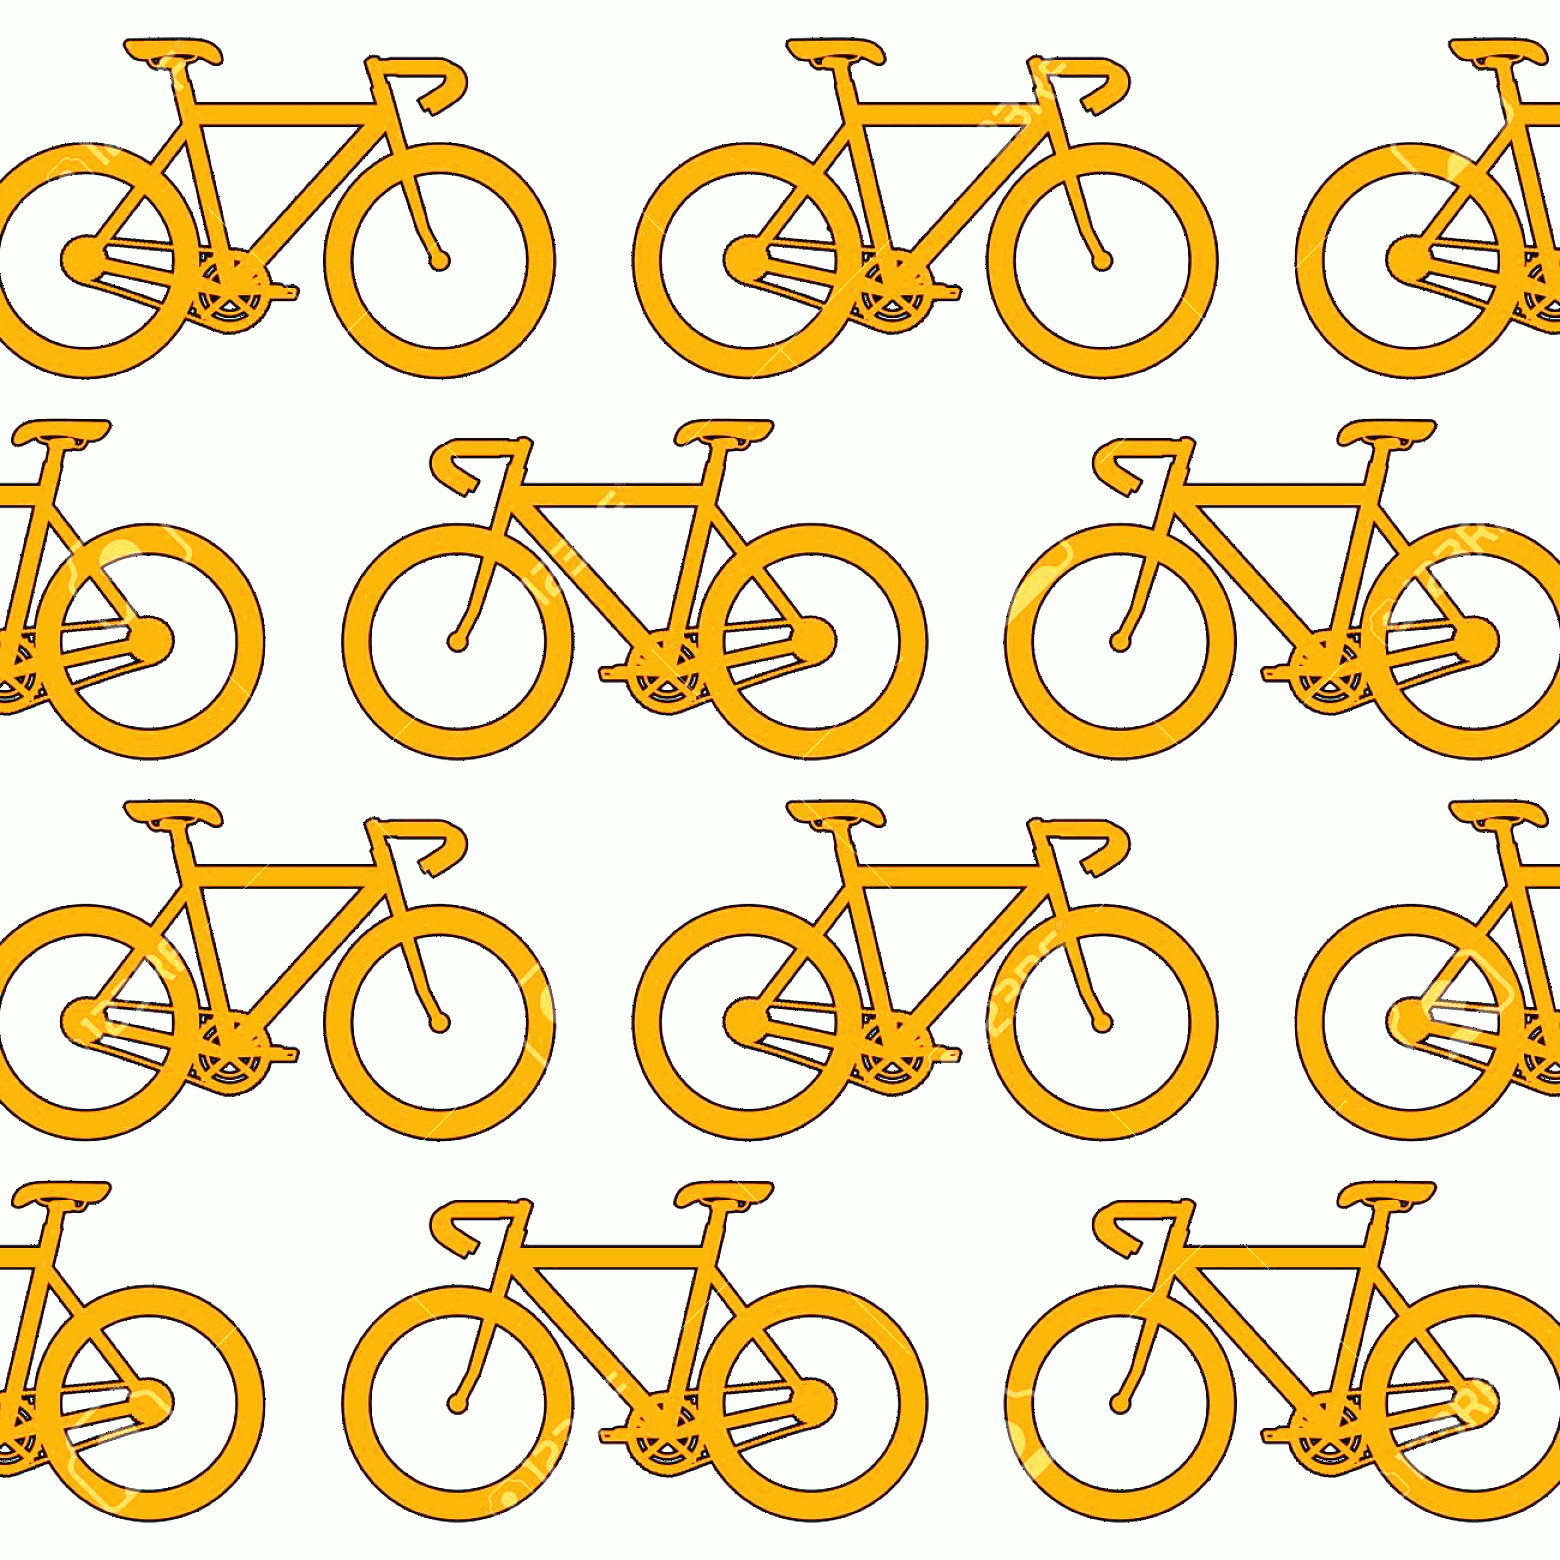 Bicycle Vector Artwork Of Patterns: Photostock Vector Racing Bicycle Pattern Background Vector Illustration Design